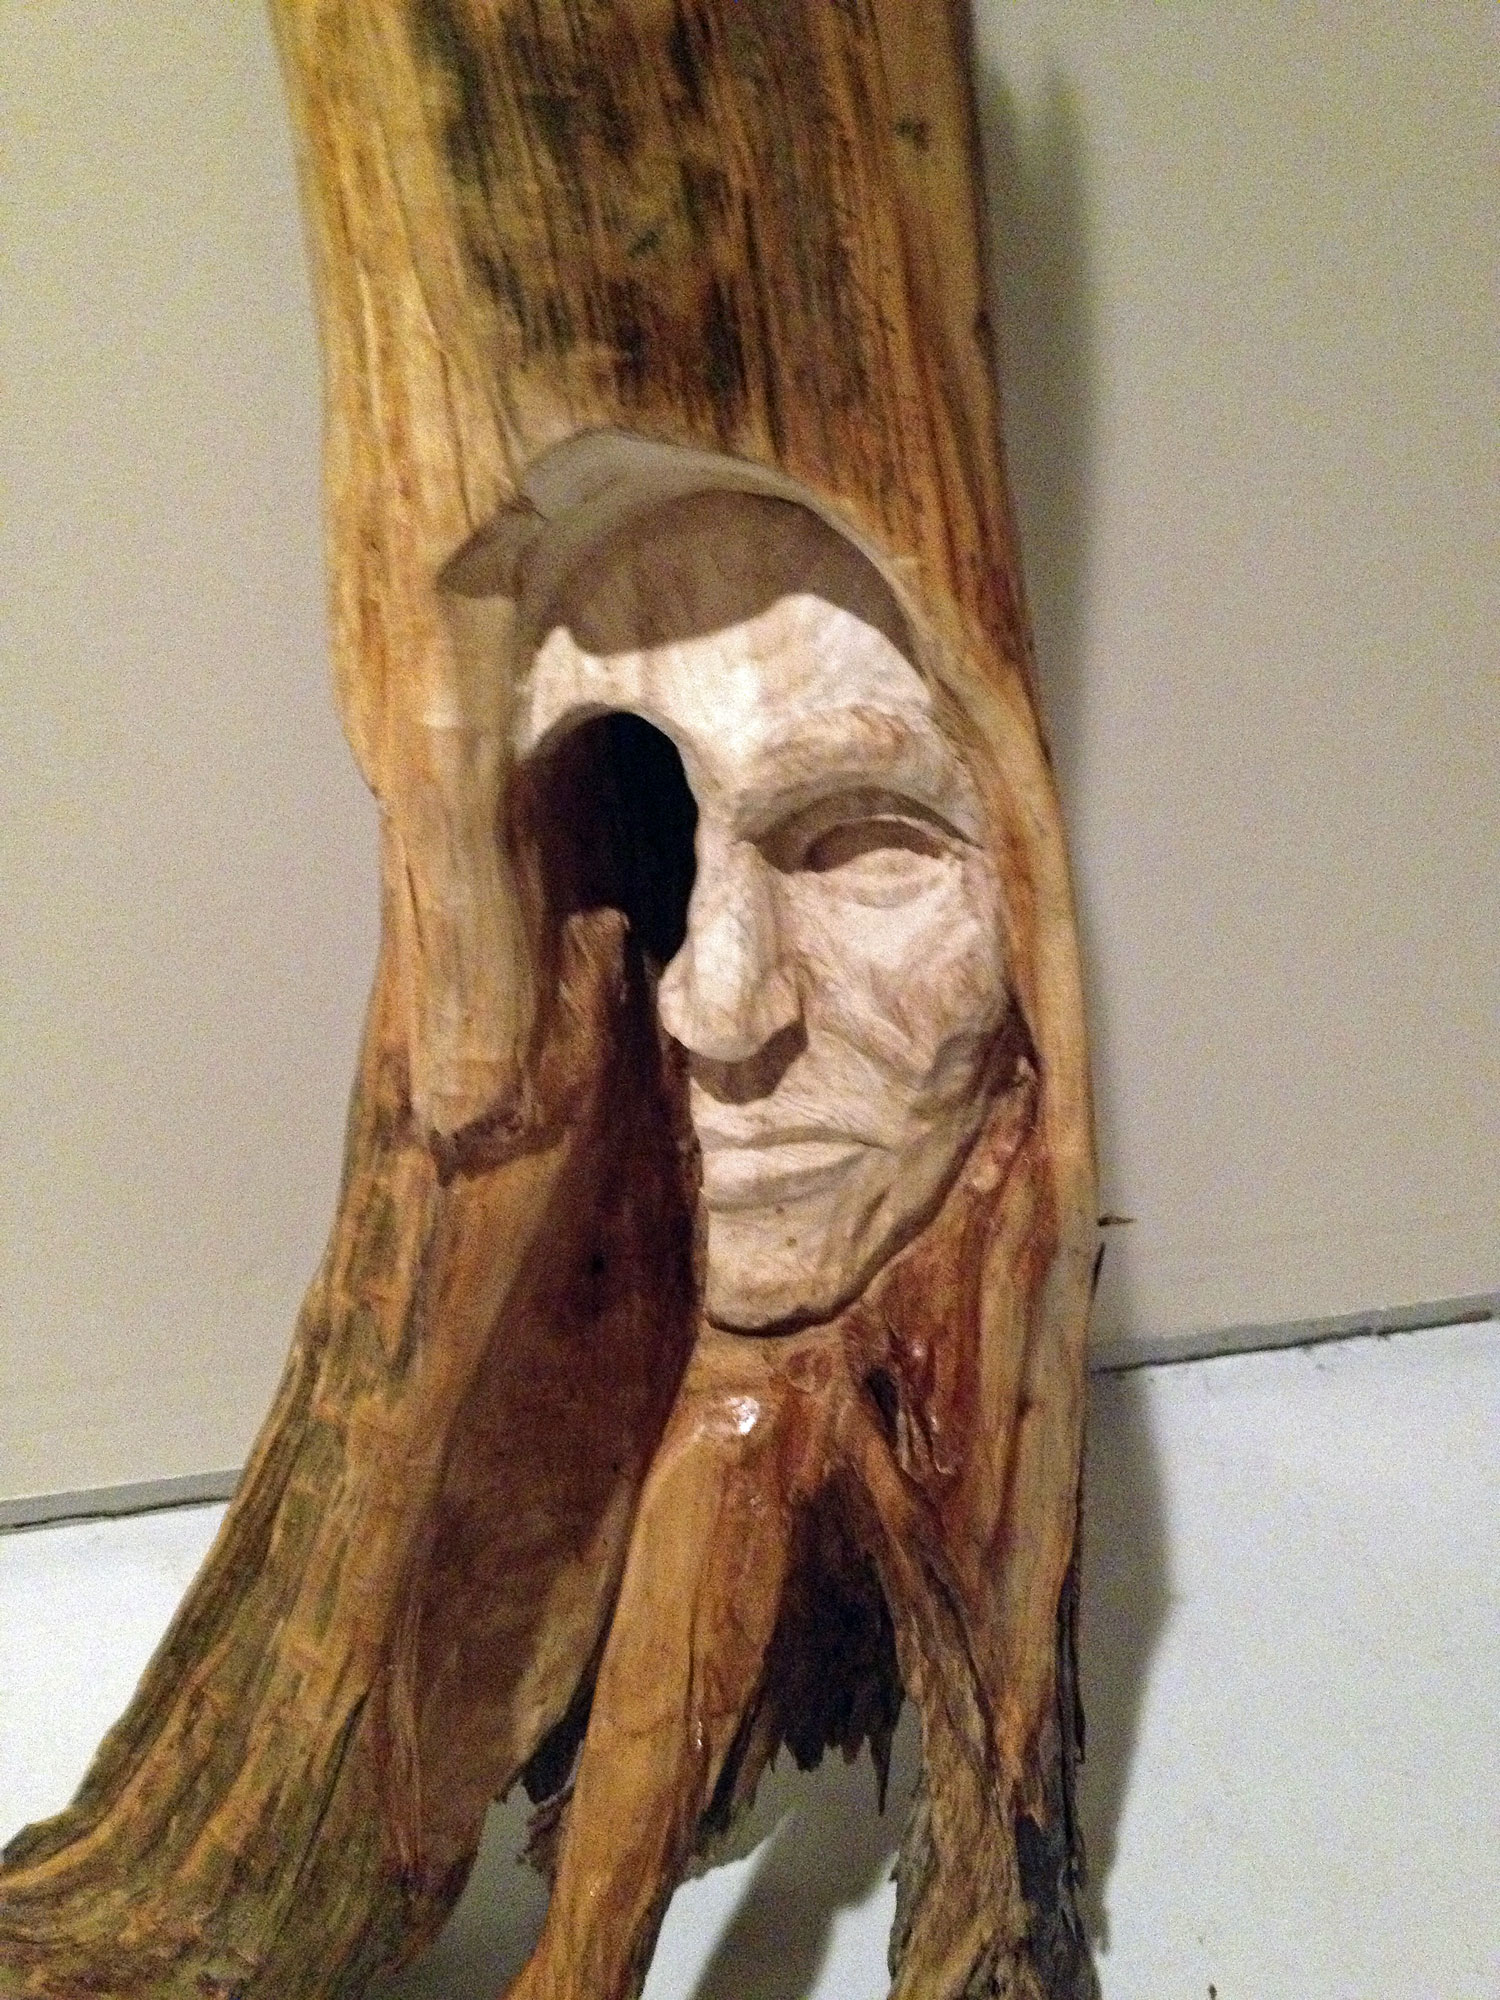 The piece that I showed my wife. It did not start out to be half a face, but it actually became more interesting; you never know where the wood will take you.